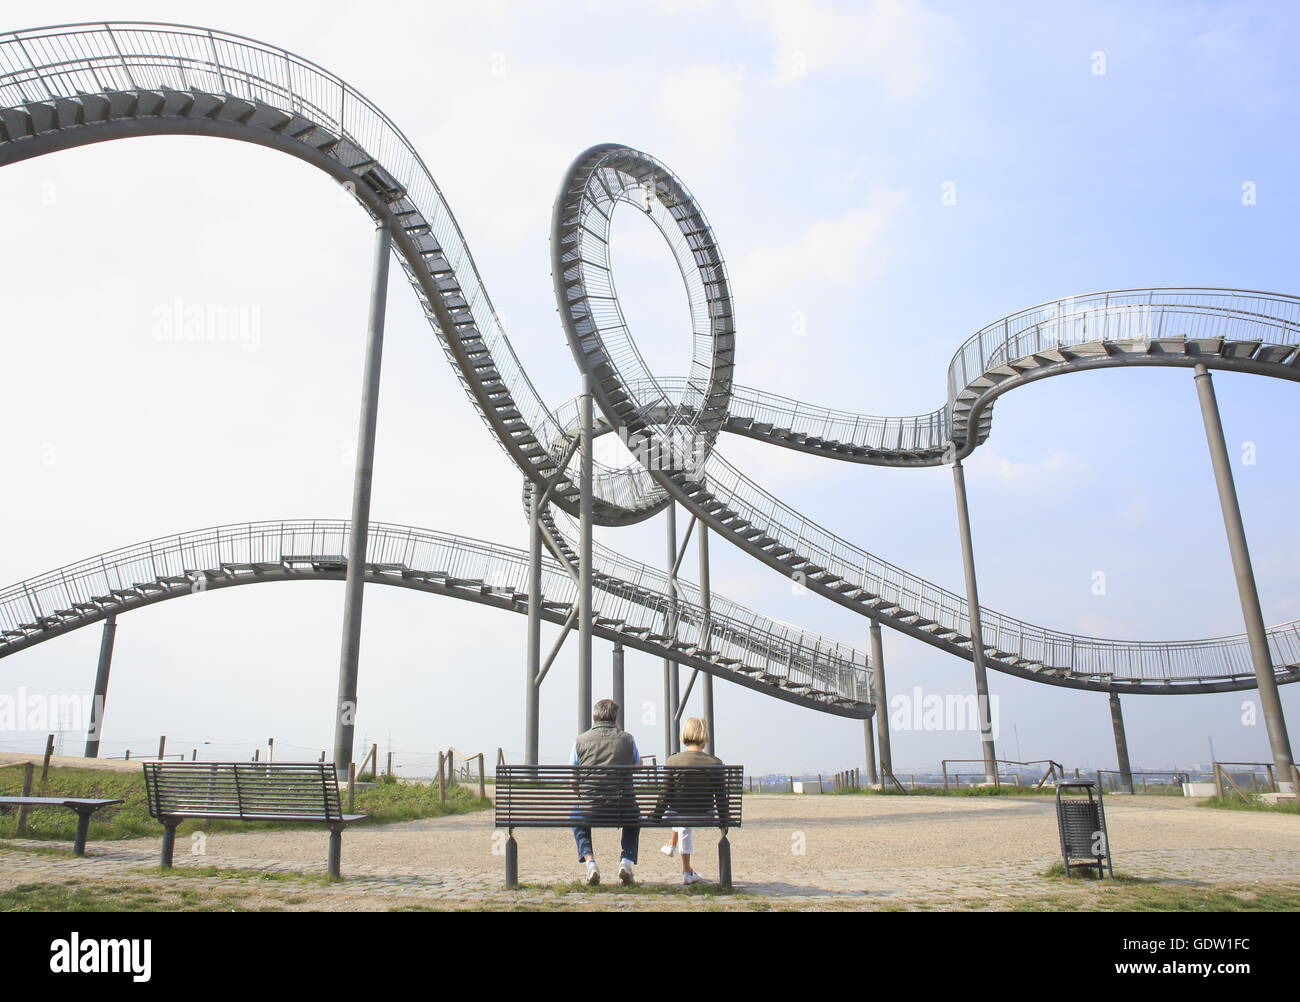 Tiger and Turtle - structural change in the Ruhr region - Stock Image